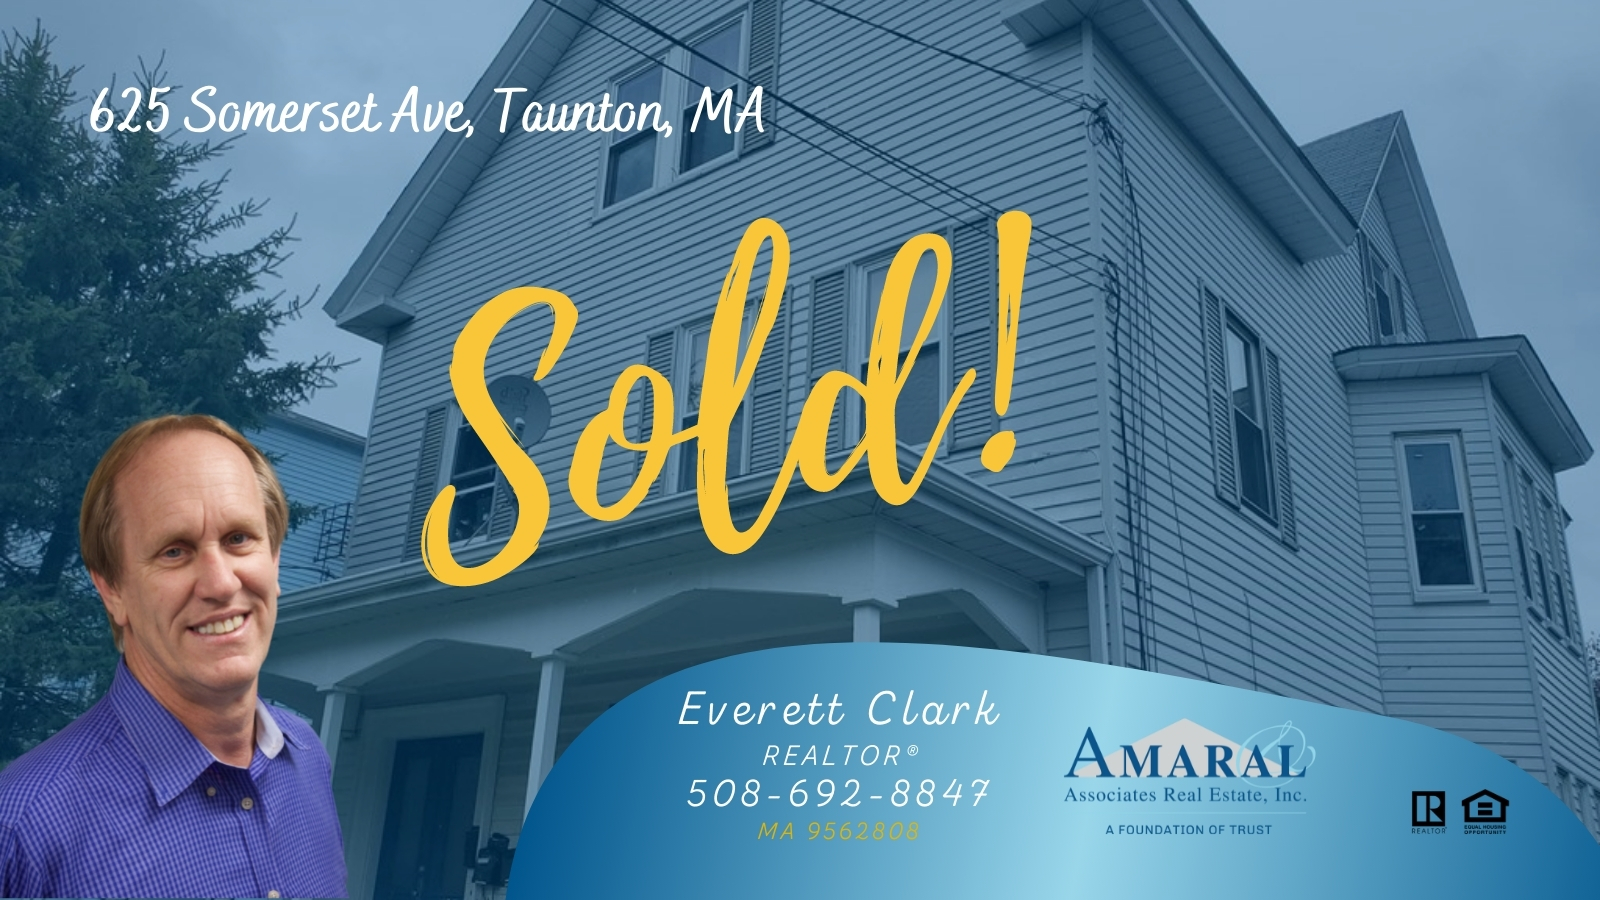 SOLD with Everett Clark! 625 Somerset Ave, Taunton, MA